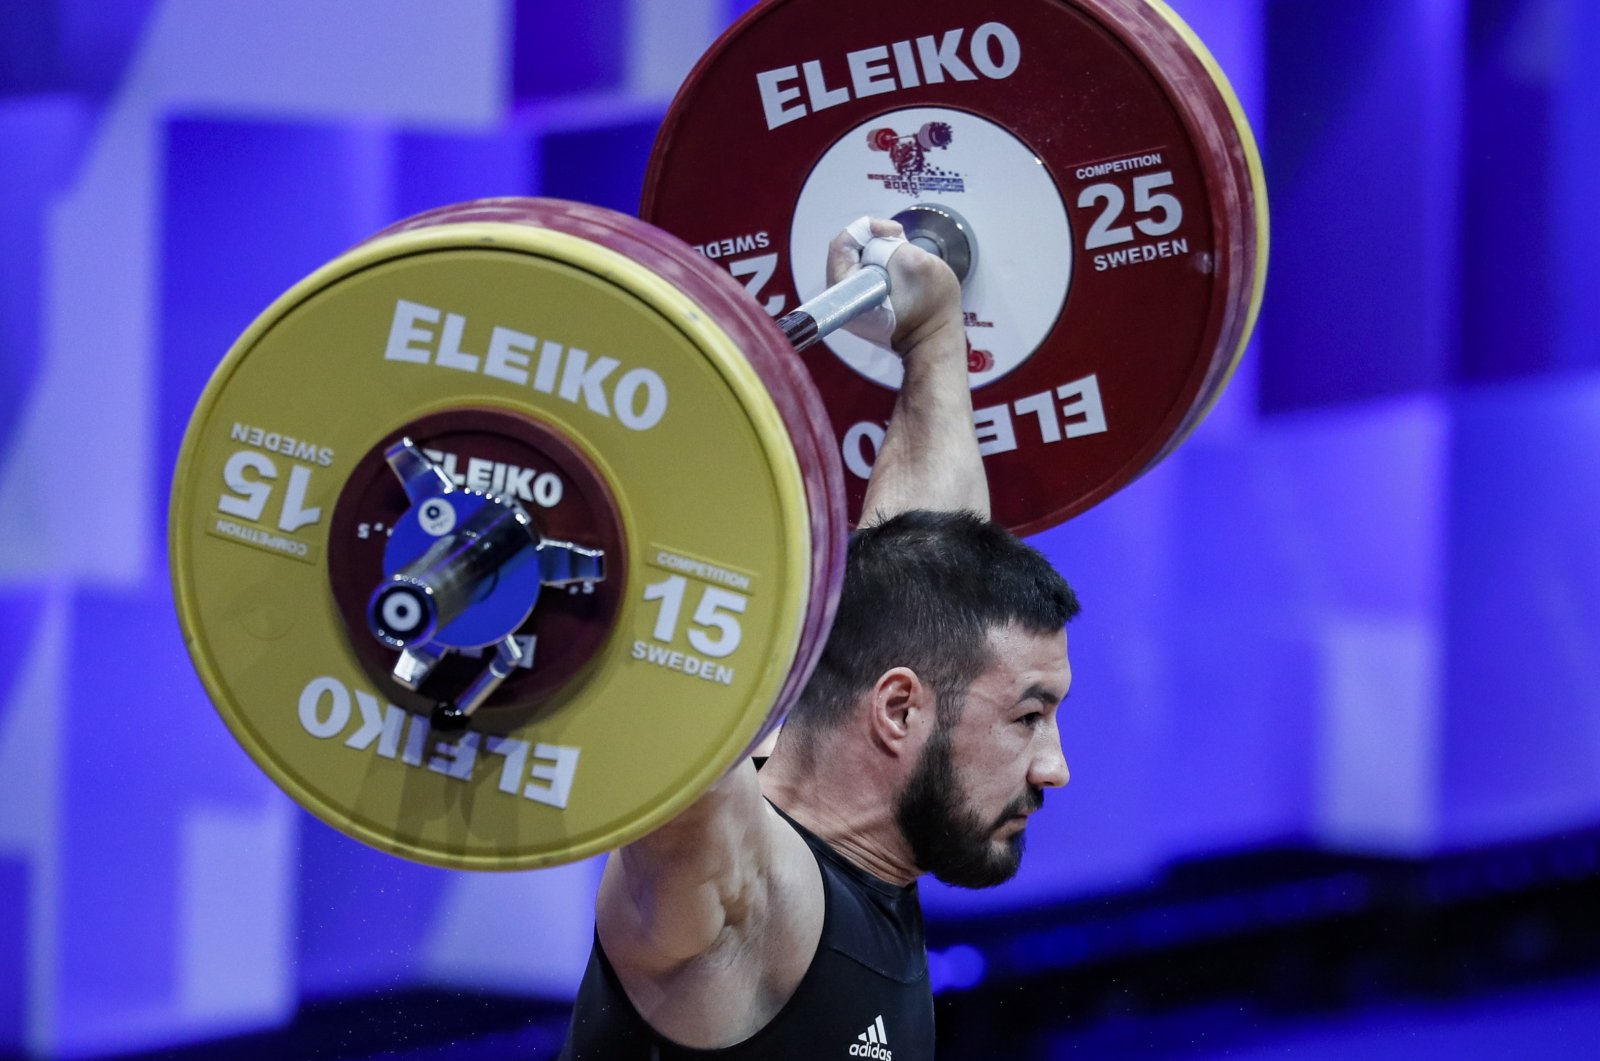 Daniyar Ismailov of Turkey in action during the men's 73-kilogram category final at the 2021 EWF European Weightlifting Championships, in Moscow, Russia, April 6, 2021. (EPA Photo)